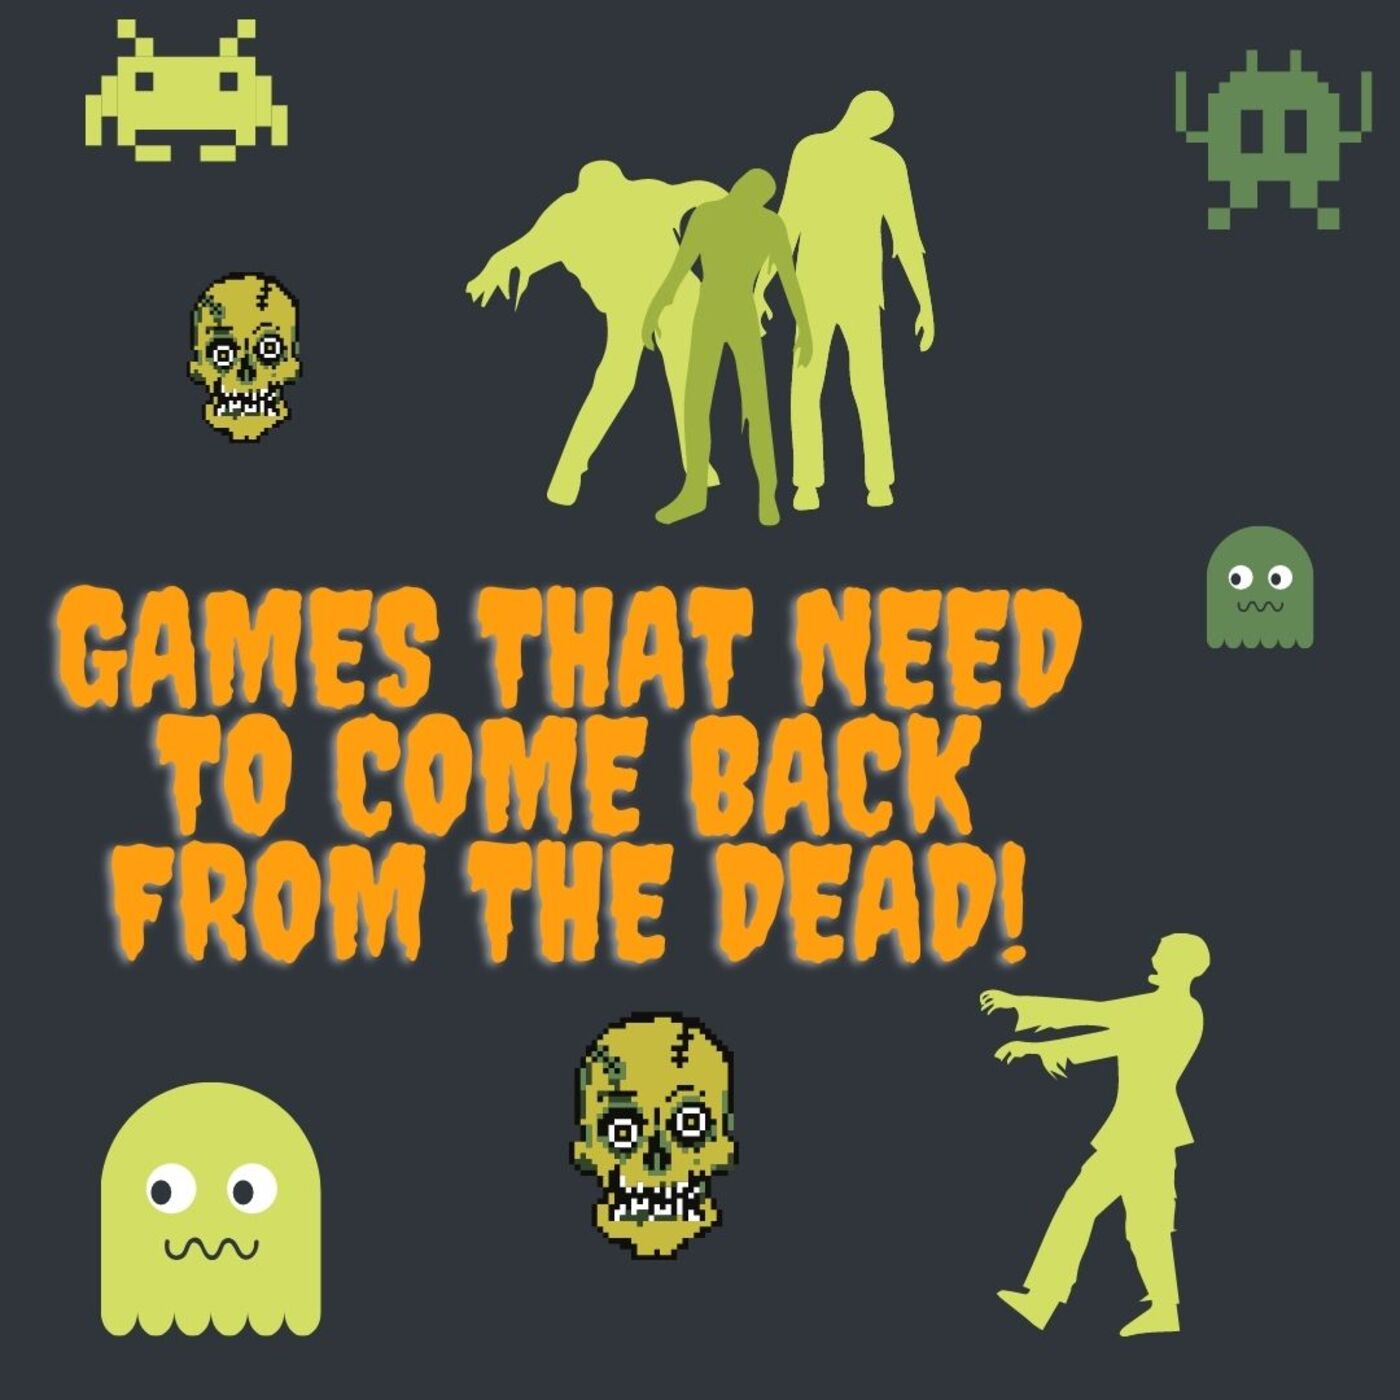 Bring These Games Back From the Dead!